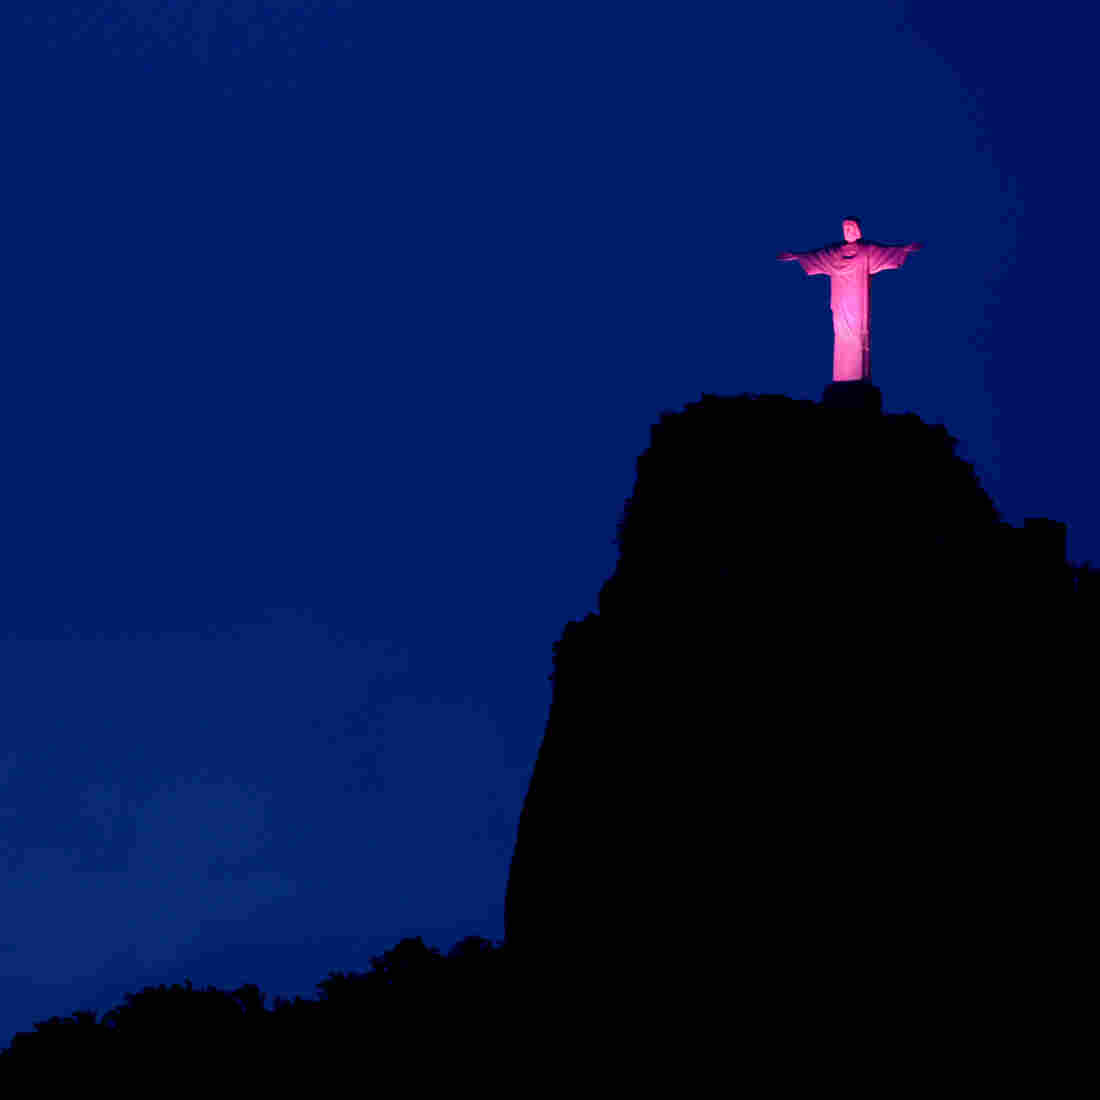 Brazil's Christ the Redeemer statue is lit up in pink as part of a campaign for breast cancer awareness. The country's survival rate for the disease is improving.